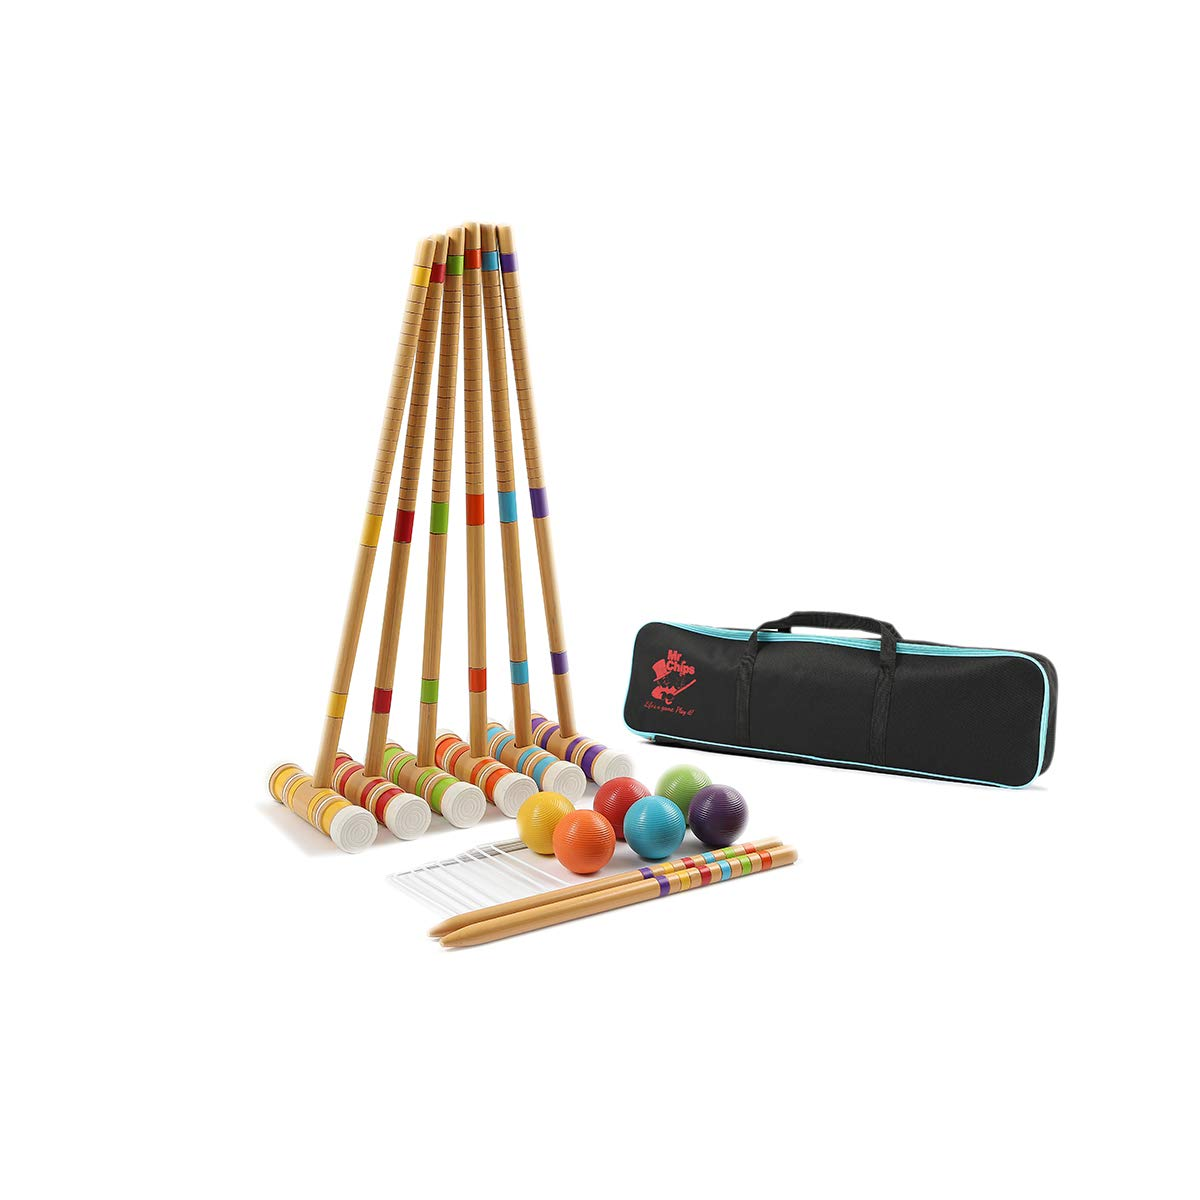 MR CHIPS Croquet Set Playing Game - Wooden Mallet - Adults & Kids - 6 Players - 6 Colors - Free Can Coolers by MR CHIPS (Image #1)